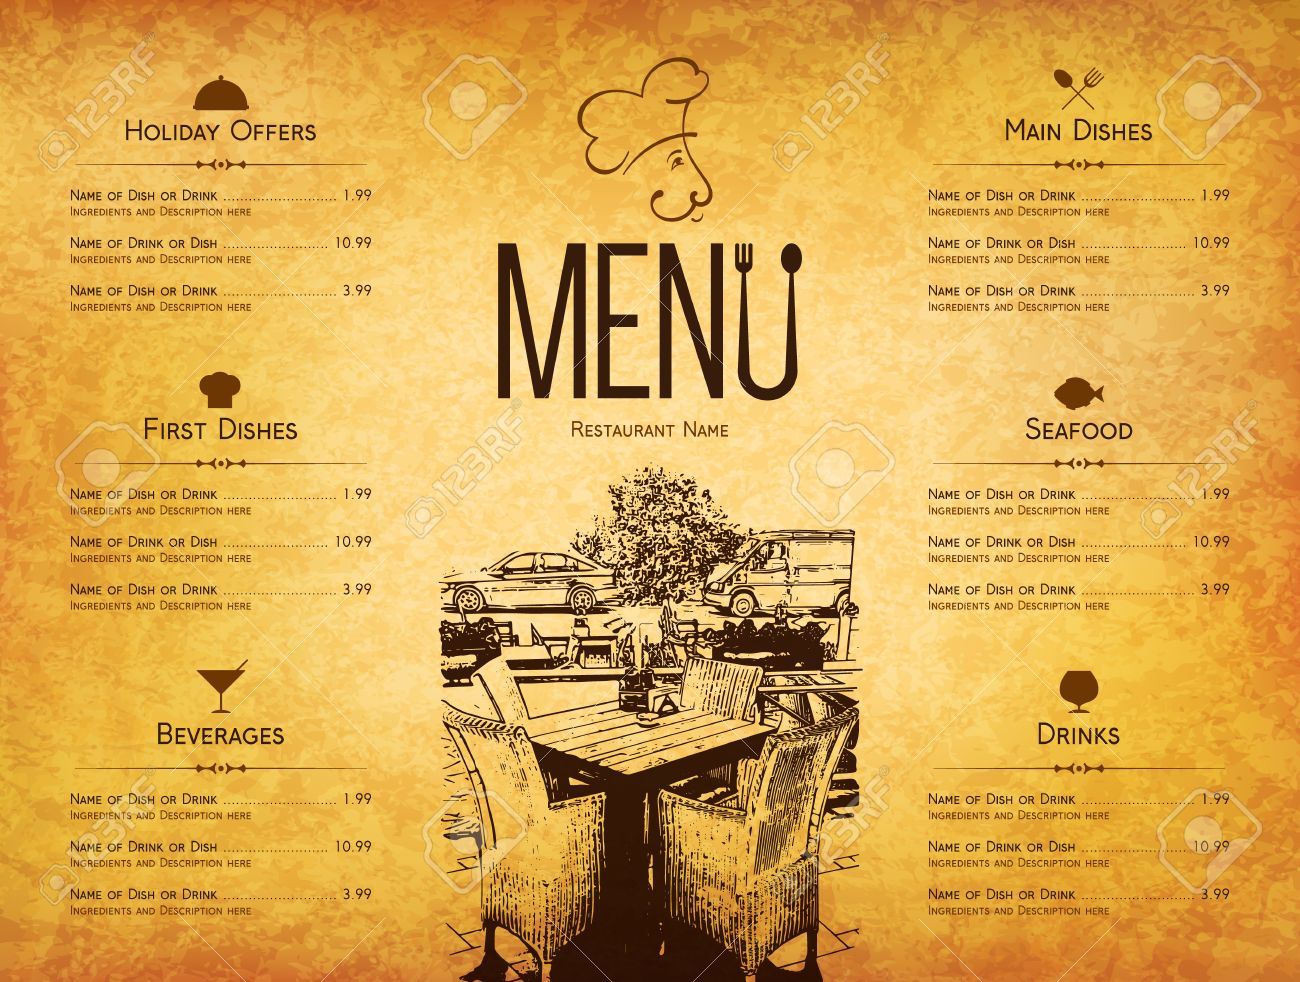 Restaurant Menu Design Vector Menu Brochure Template For Cafe Royalty Free Cliparts Vectors And Stock Illustration Image 61196910